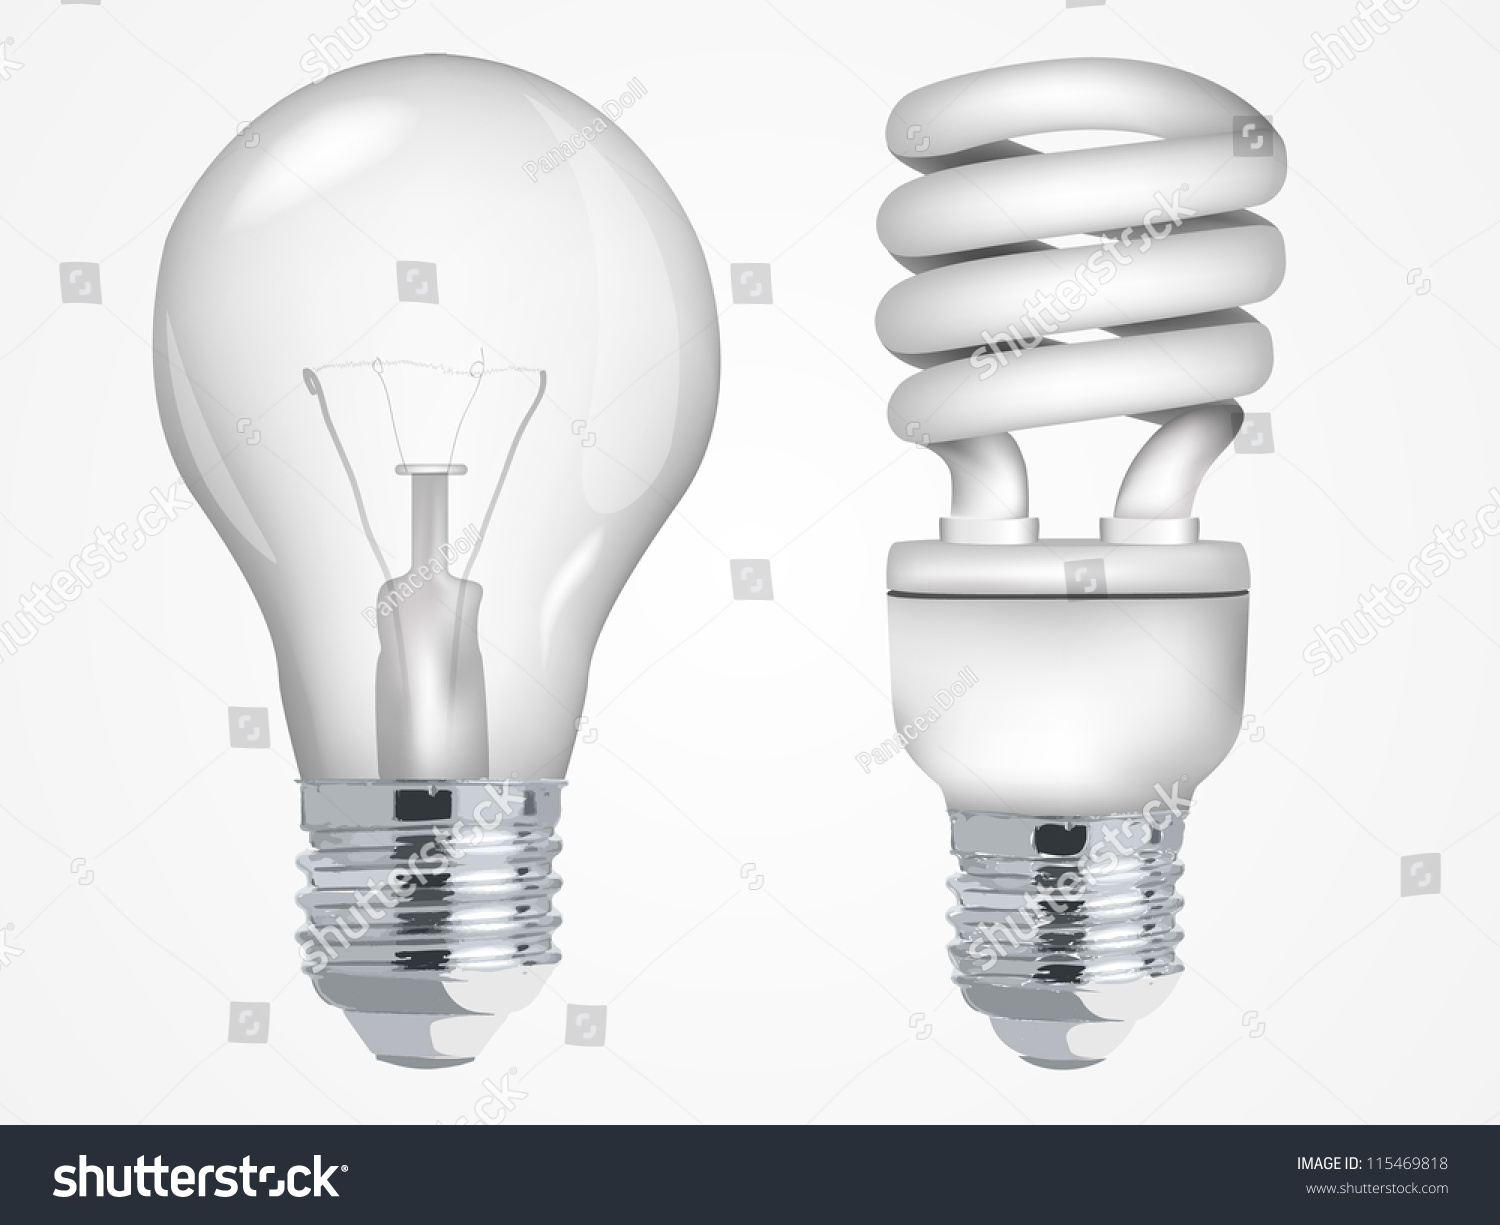 Related keywords suggestions for incandescent energy Efficient light bulbs